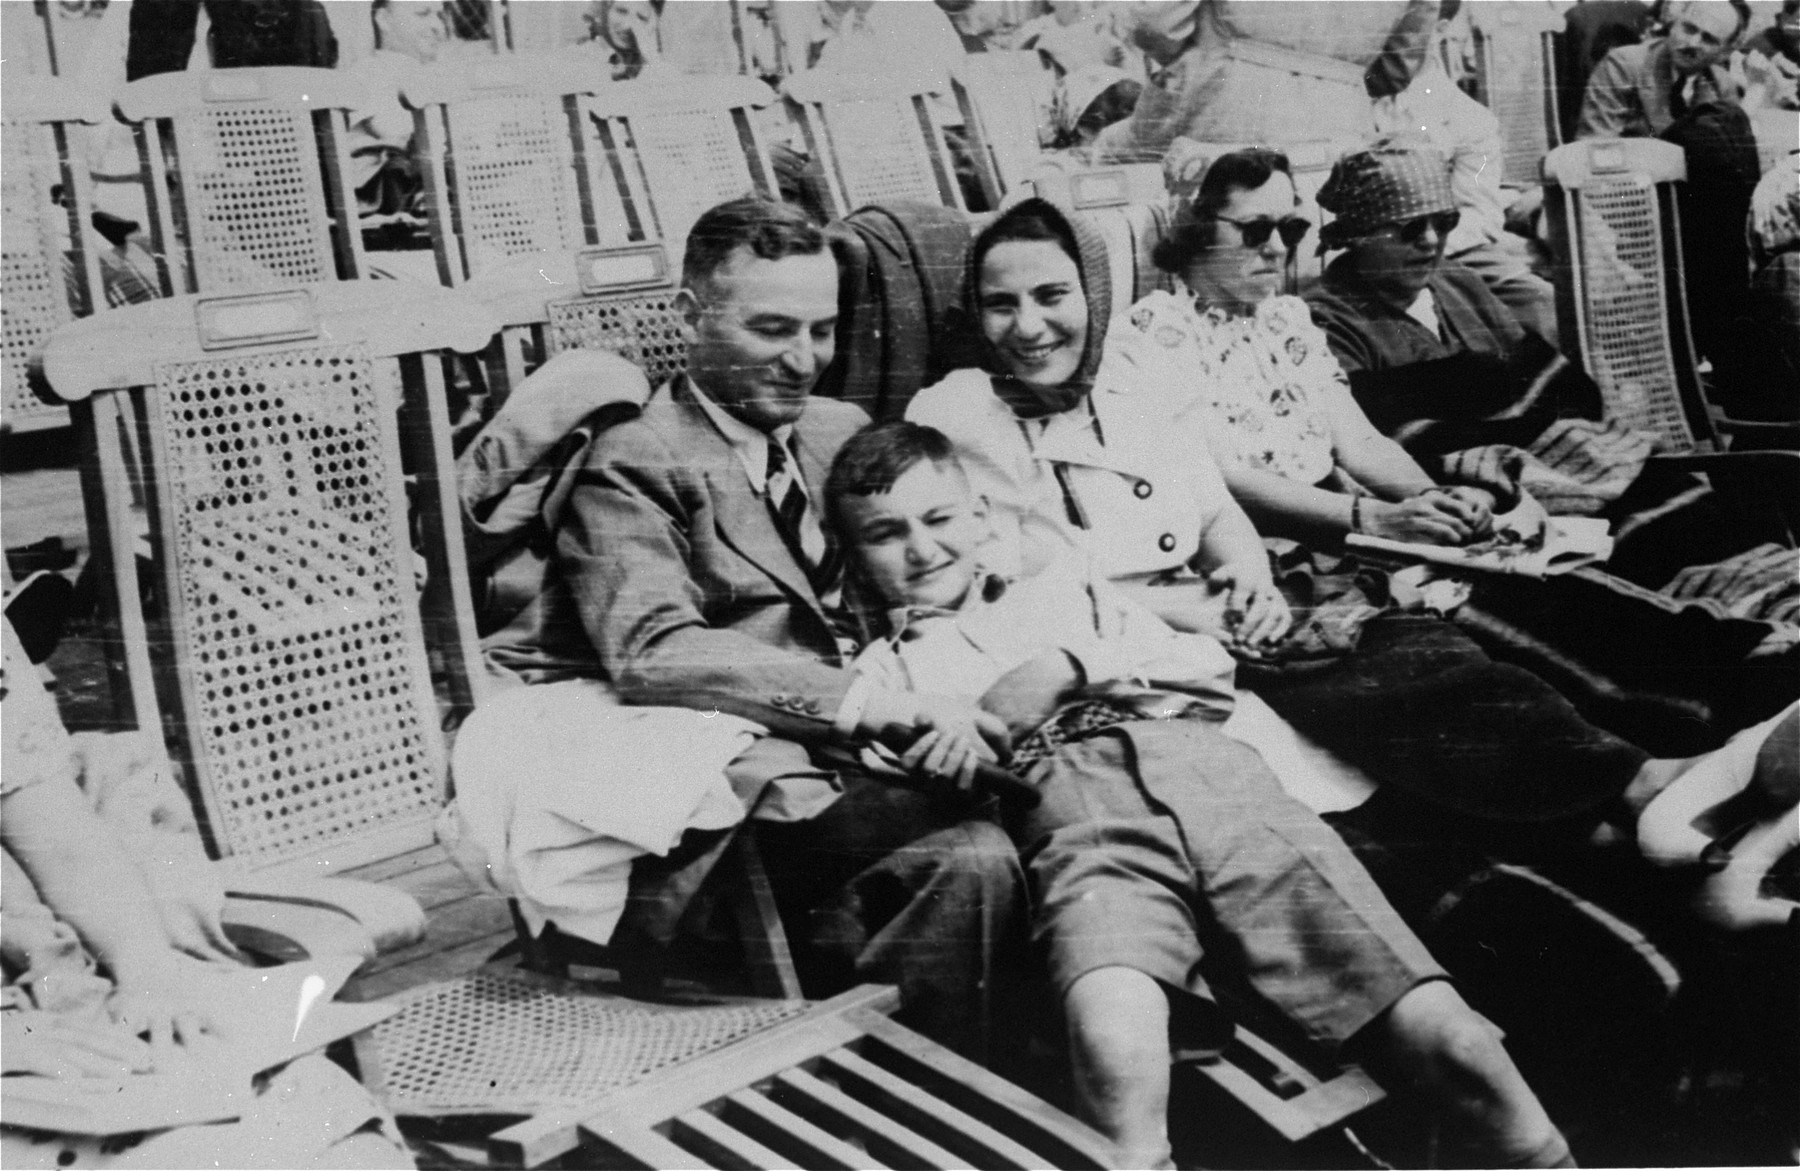 A Jewish refugee family from Germany poses on the deck of the SS Rotterdam while en route to New York.  Pictured are Sol and Henrietta Meyer and their son Harvey.  (The Meyers are the aunt and uncle of donor Jill Pauly.)